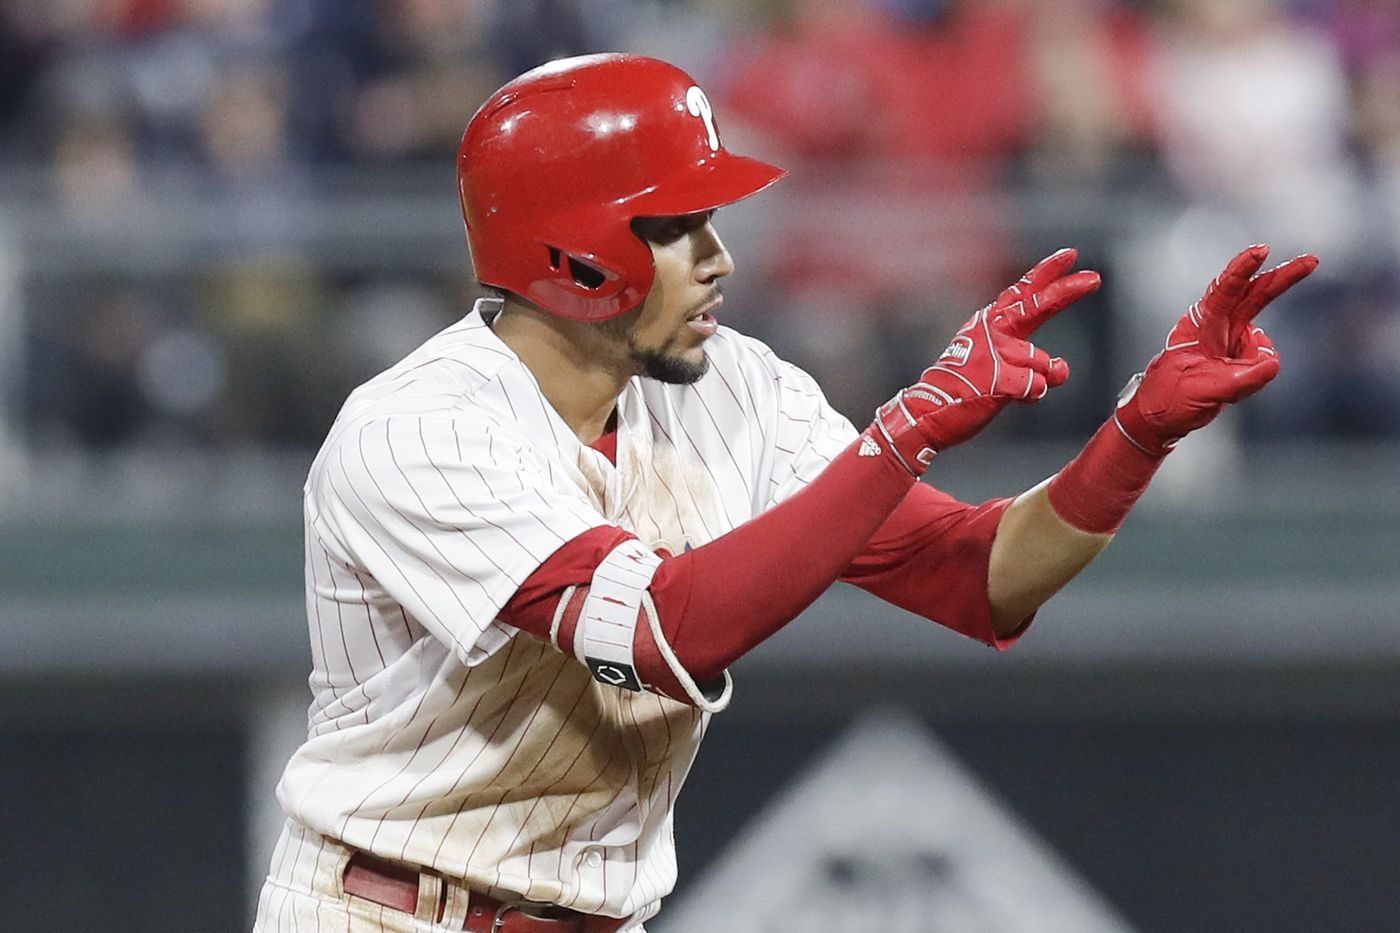 Phillies return home seeking more offense from shortstop, third base | Extra Innings